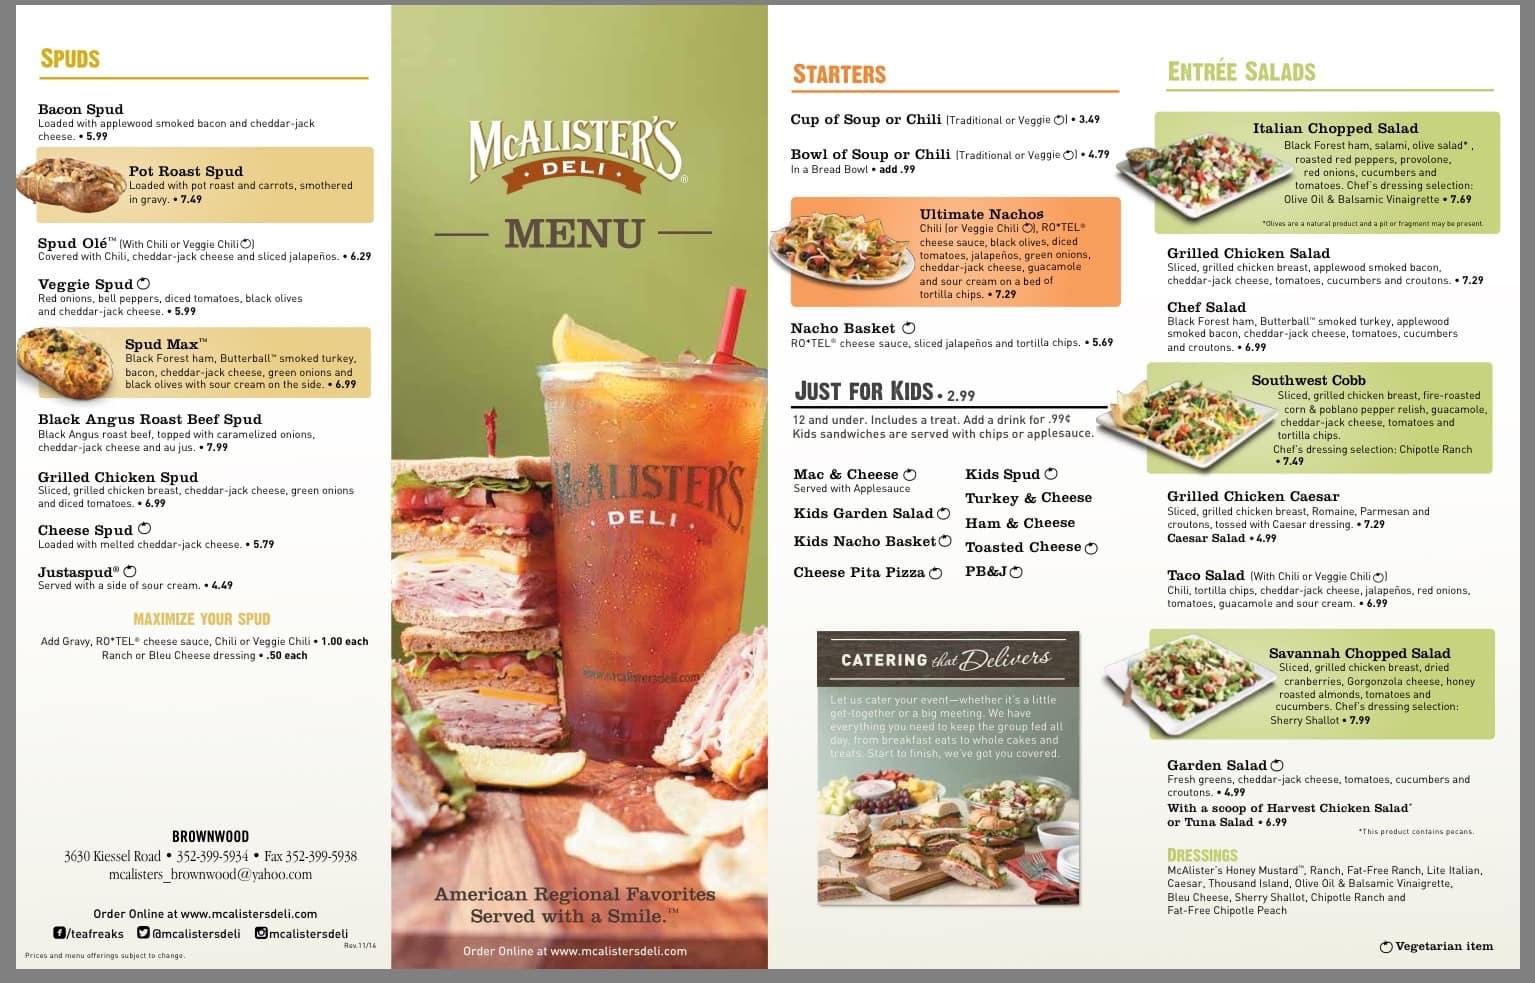 Selective image with regard to mcalisters deli printable menu